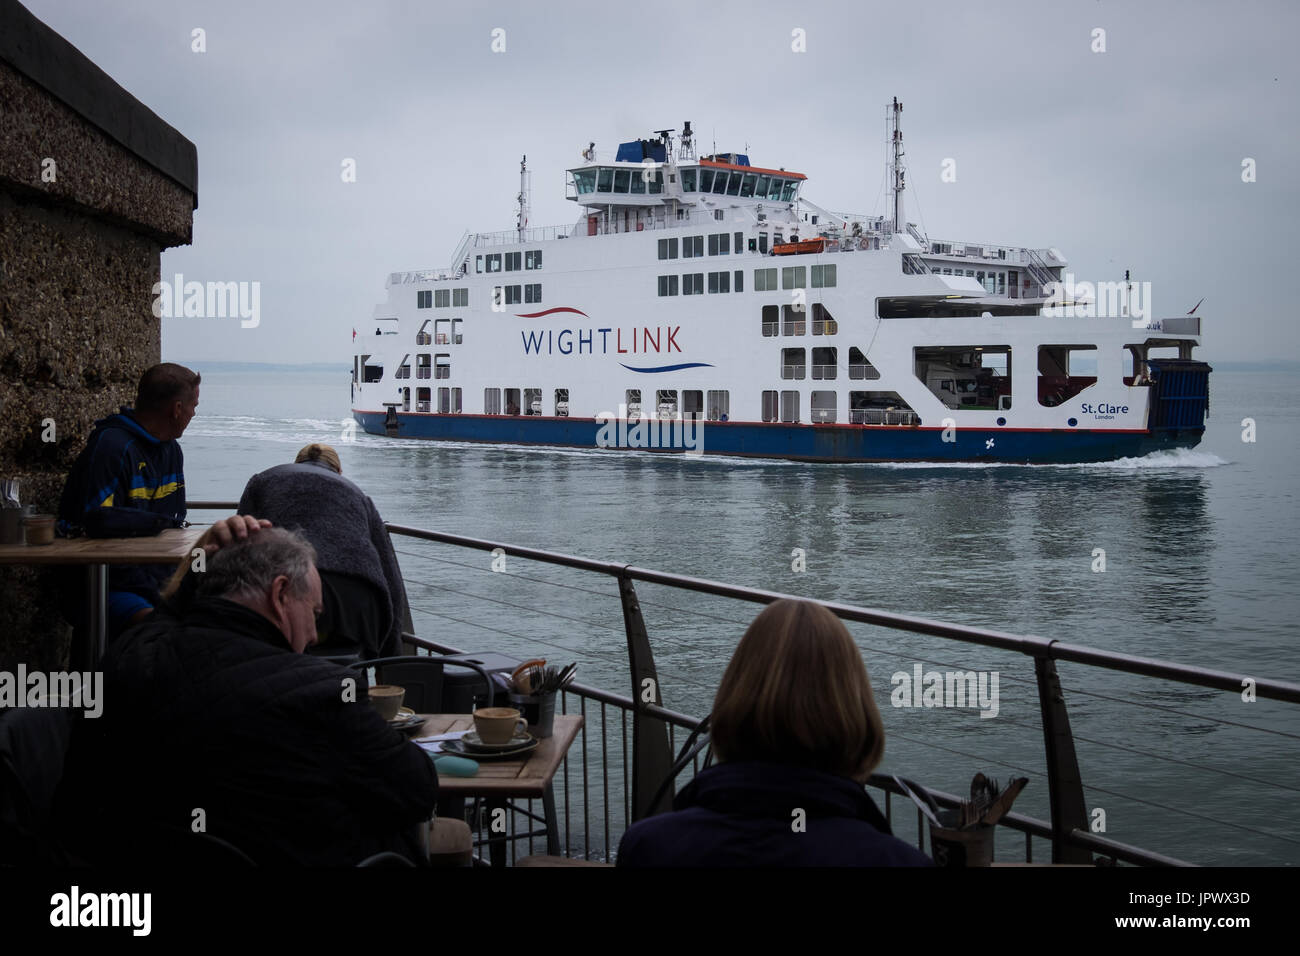 The Isle of Wight Car Ferry, St. Clare, entering Portsmouth Harbour - Stock Image